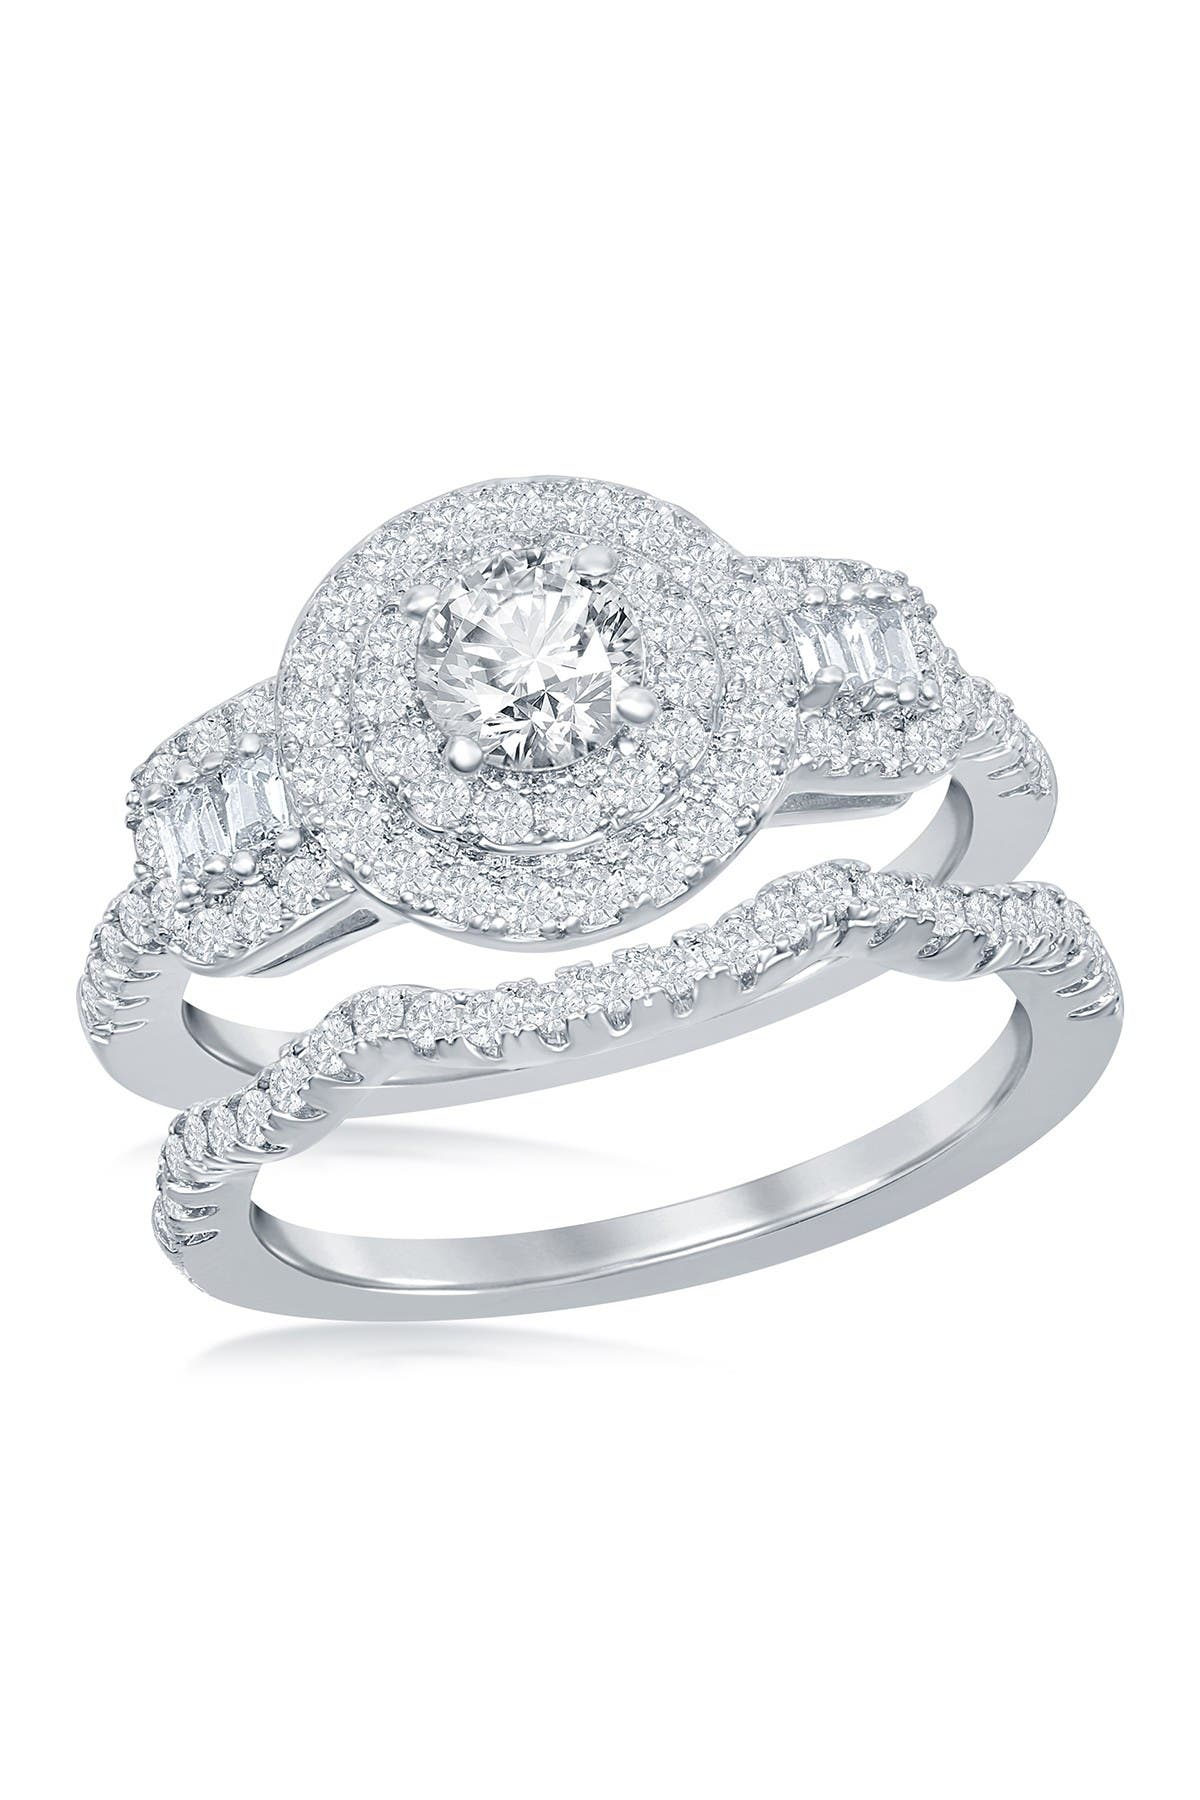 Image of Simona Jewelry Sterling Silver CZ Engagement Ring & Wedding Band Set